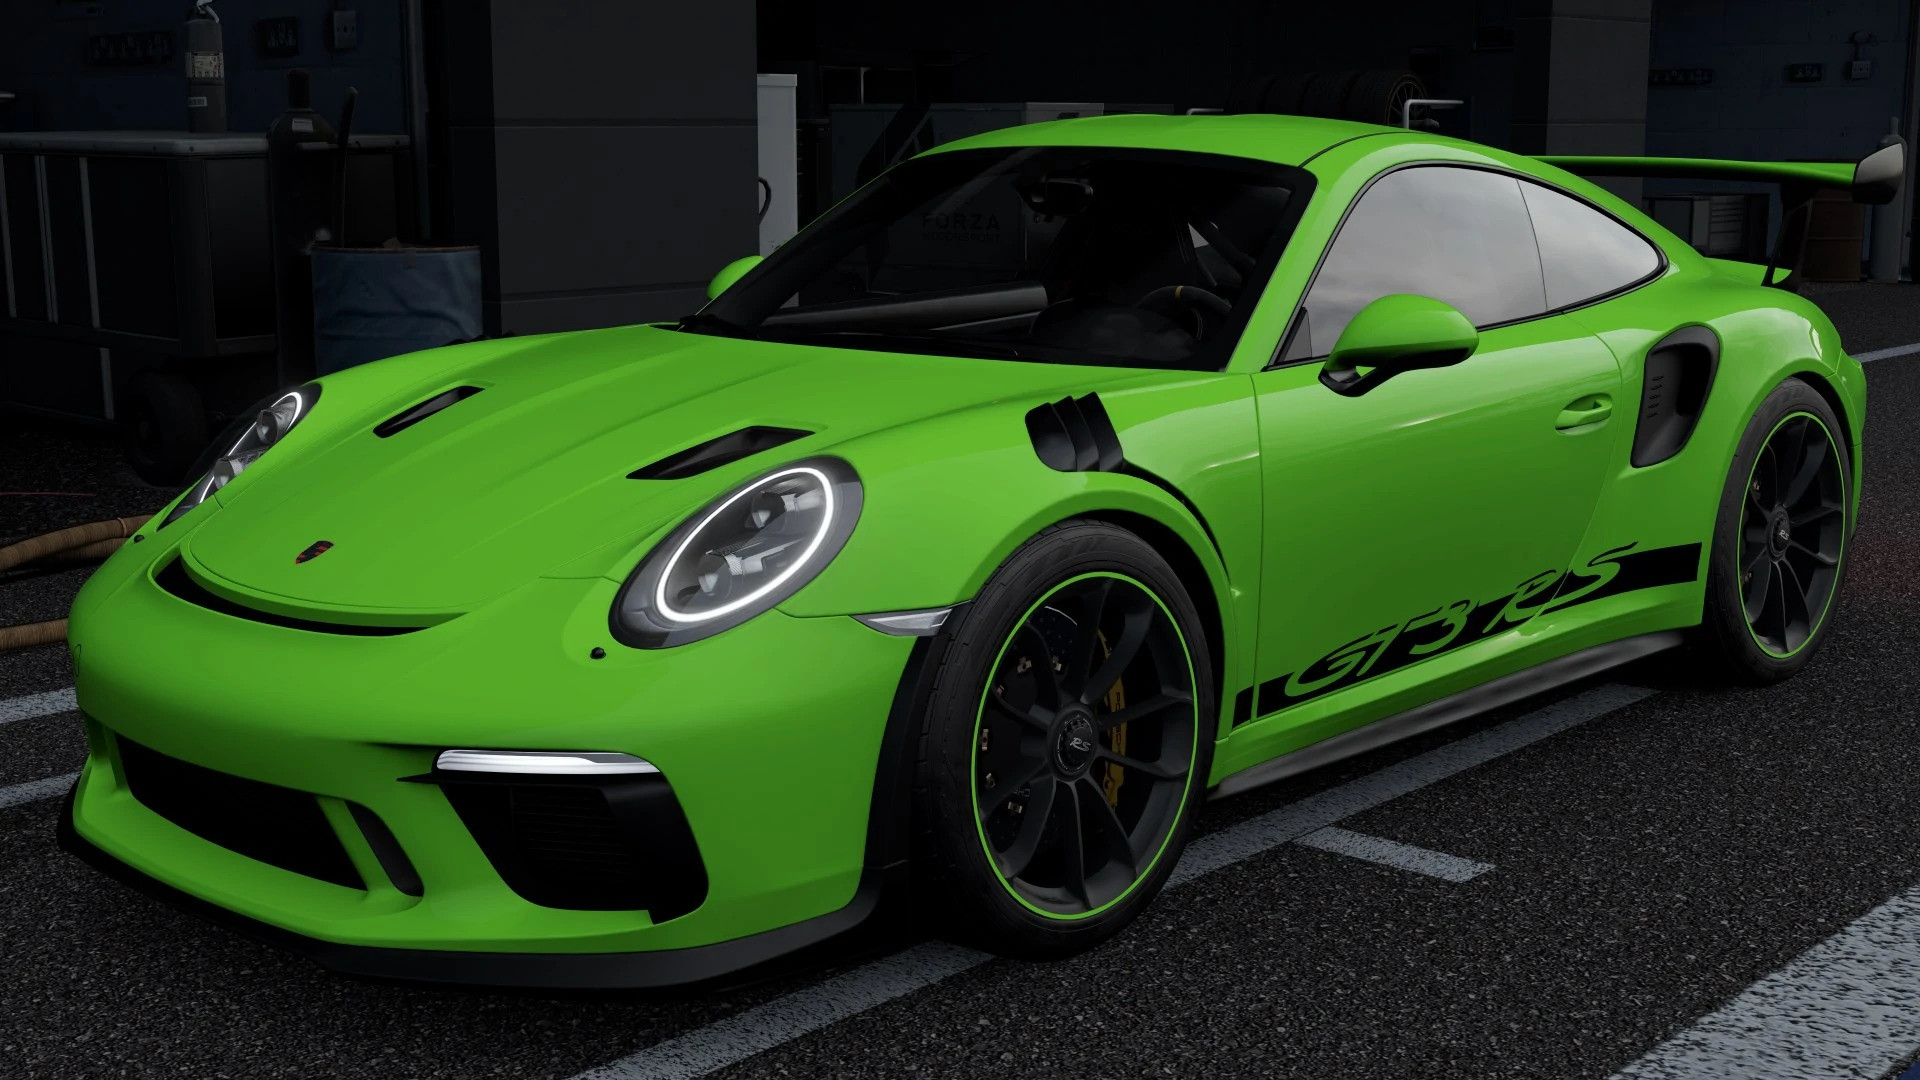 picture of a 20119 Porsche 911 GT3 RS in Forza Motorsport 7